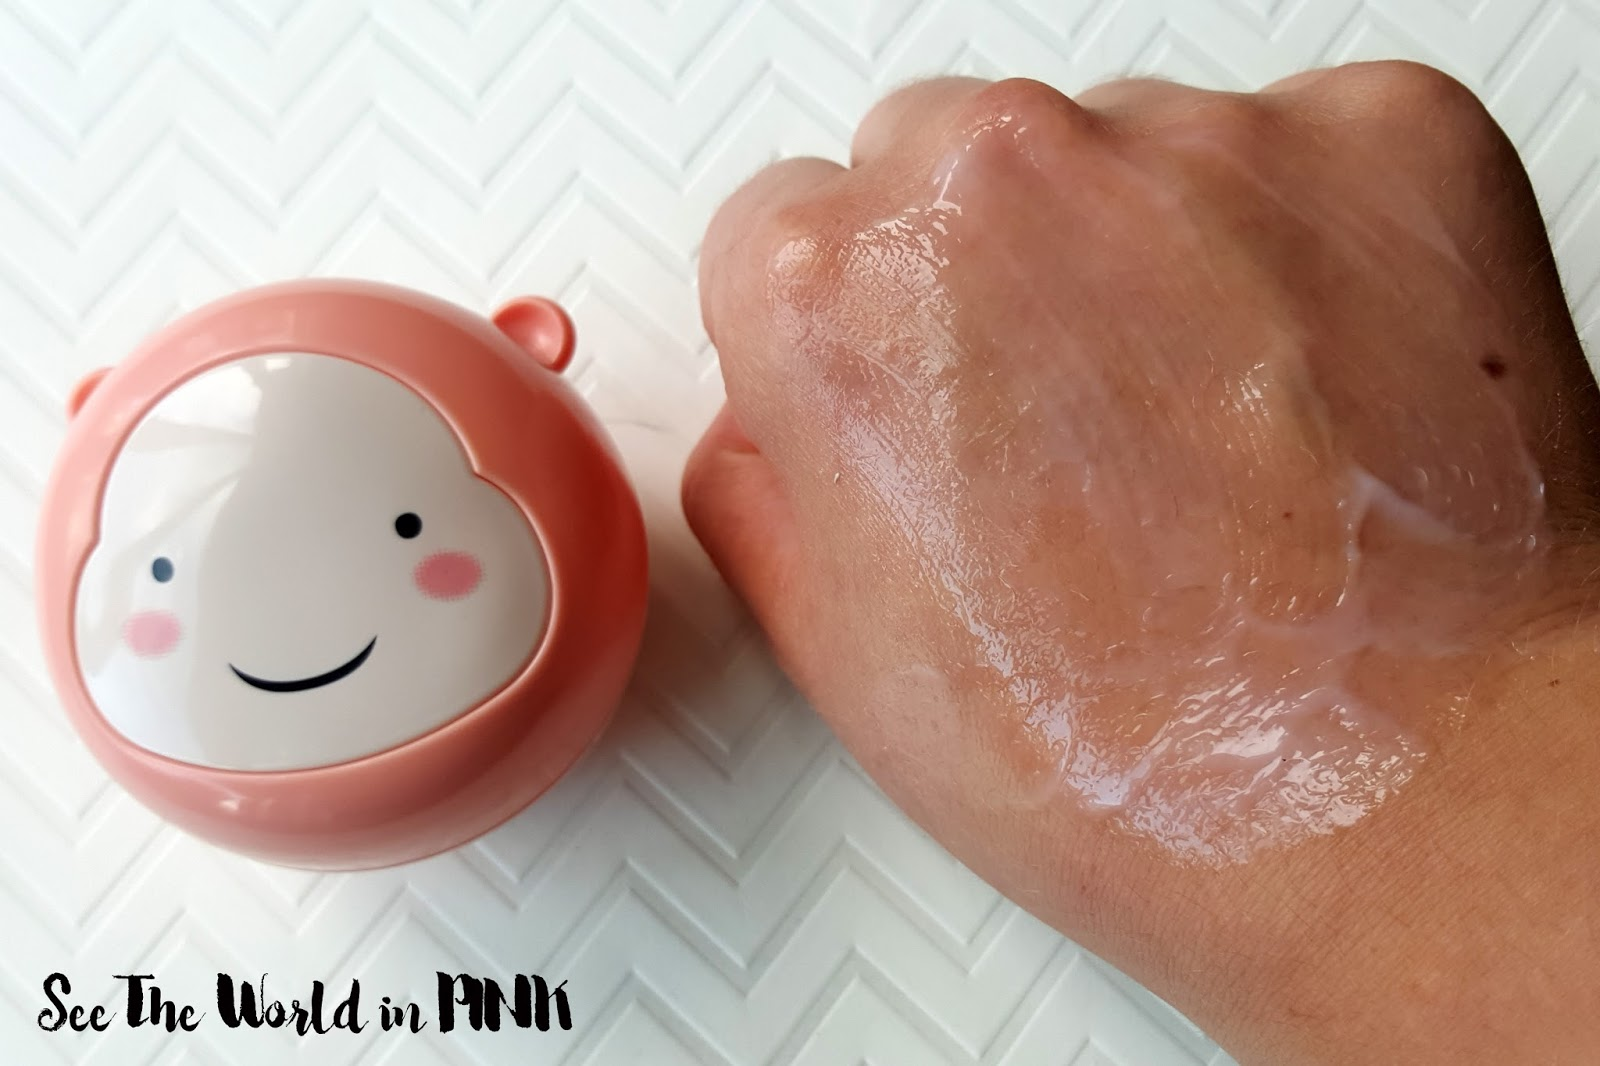 THEFACESHOP Lovely Me:ex Waterful Grapefruit Mask Review